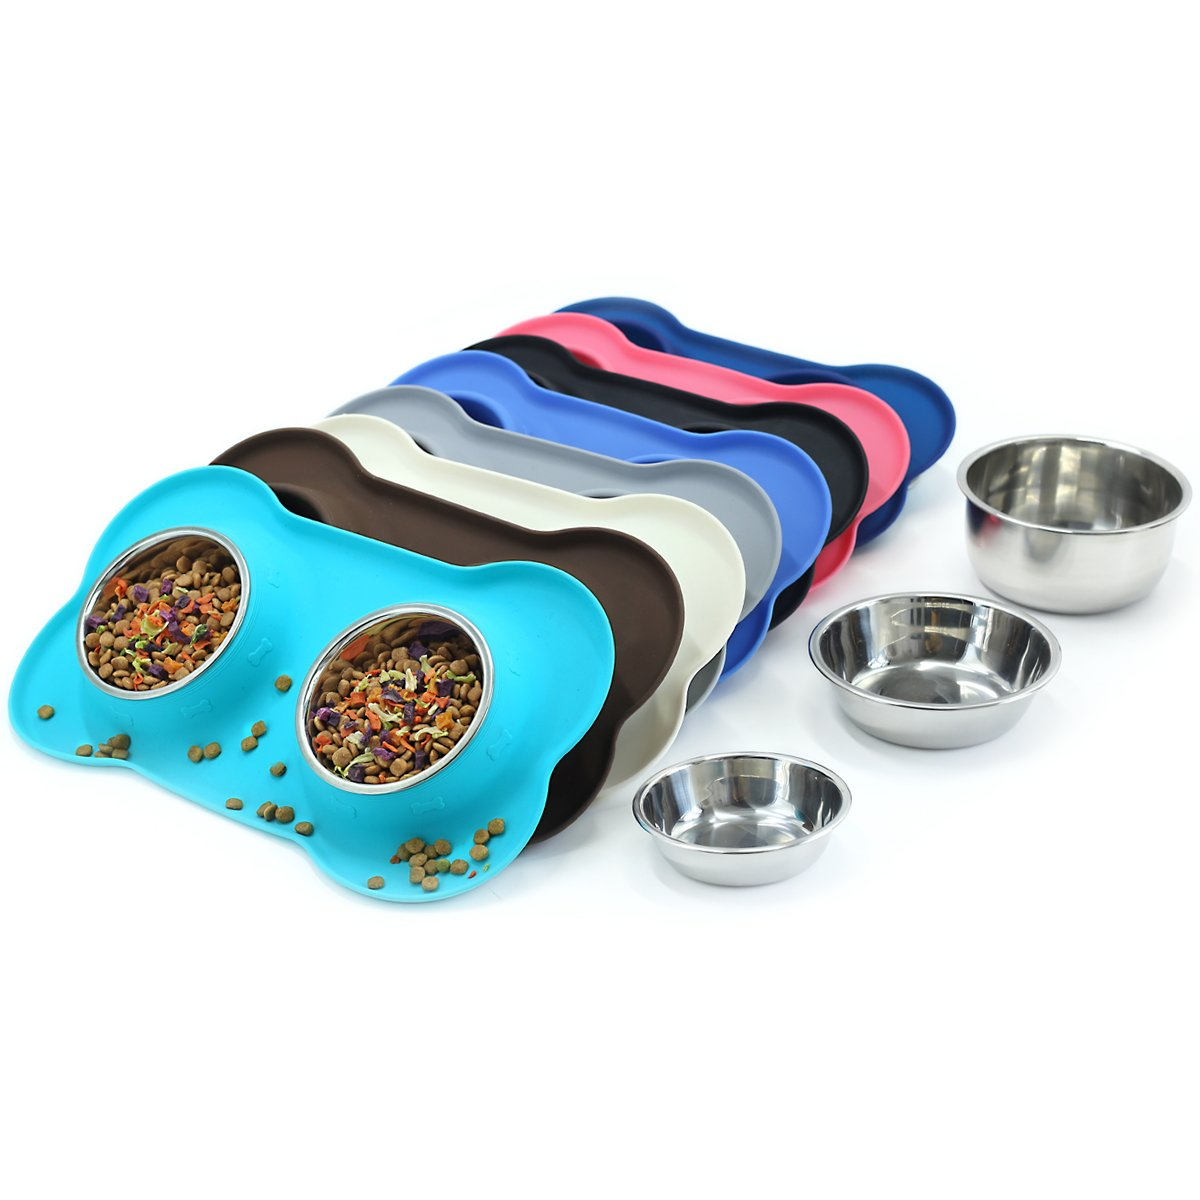 Turquoise S(for Puppies) Turquoise S(for Puppies) Vivaglory Dog Bowls, Set of 2, Stainless Steel Water and Food Bowl Pet Puppy Cat Feeder with Non Spill Skid Resistant Silicone Mat, Small, Turquoise